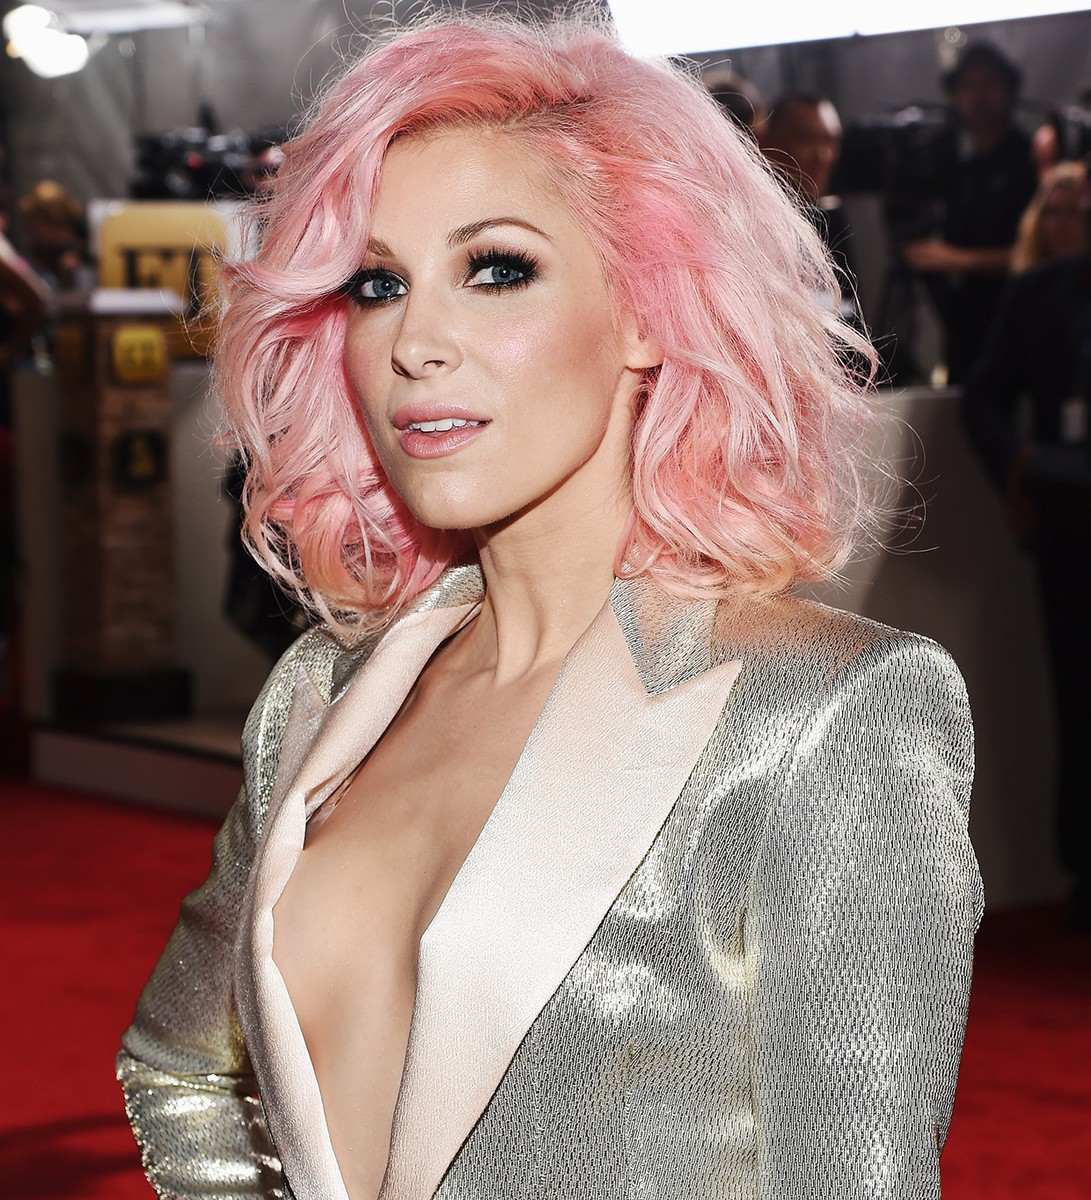 Bonnie McKee attends the 58th Grammy Awards at Staples Center on Feb. 15, 2016 in Los Angeles.